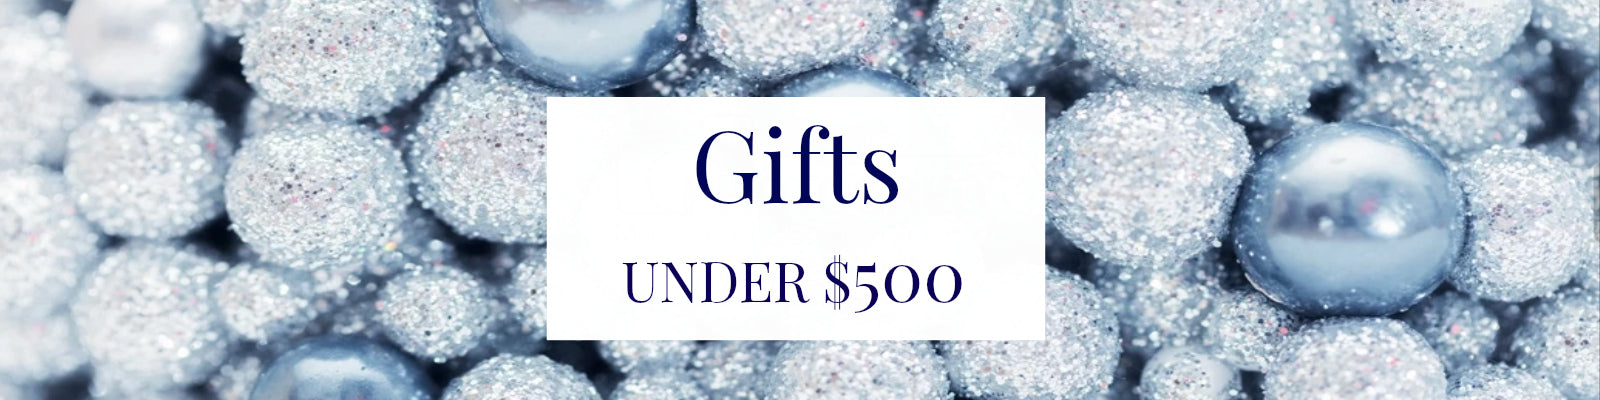 Gifts Under $500 Eichholtz | Gifts | OROA - Modernized Classic Furniture Online